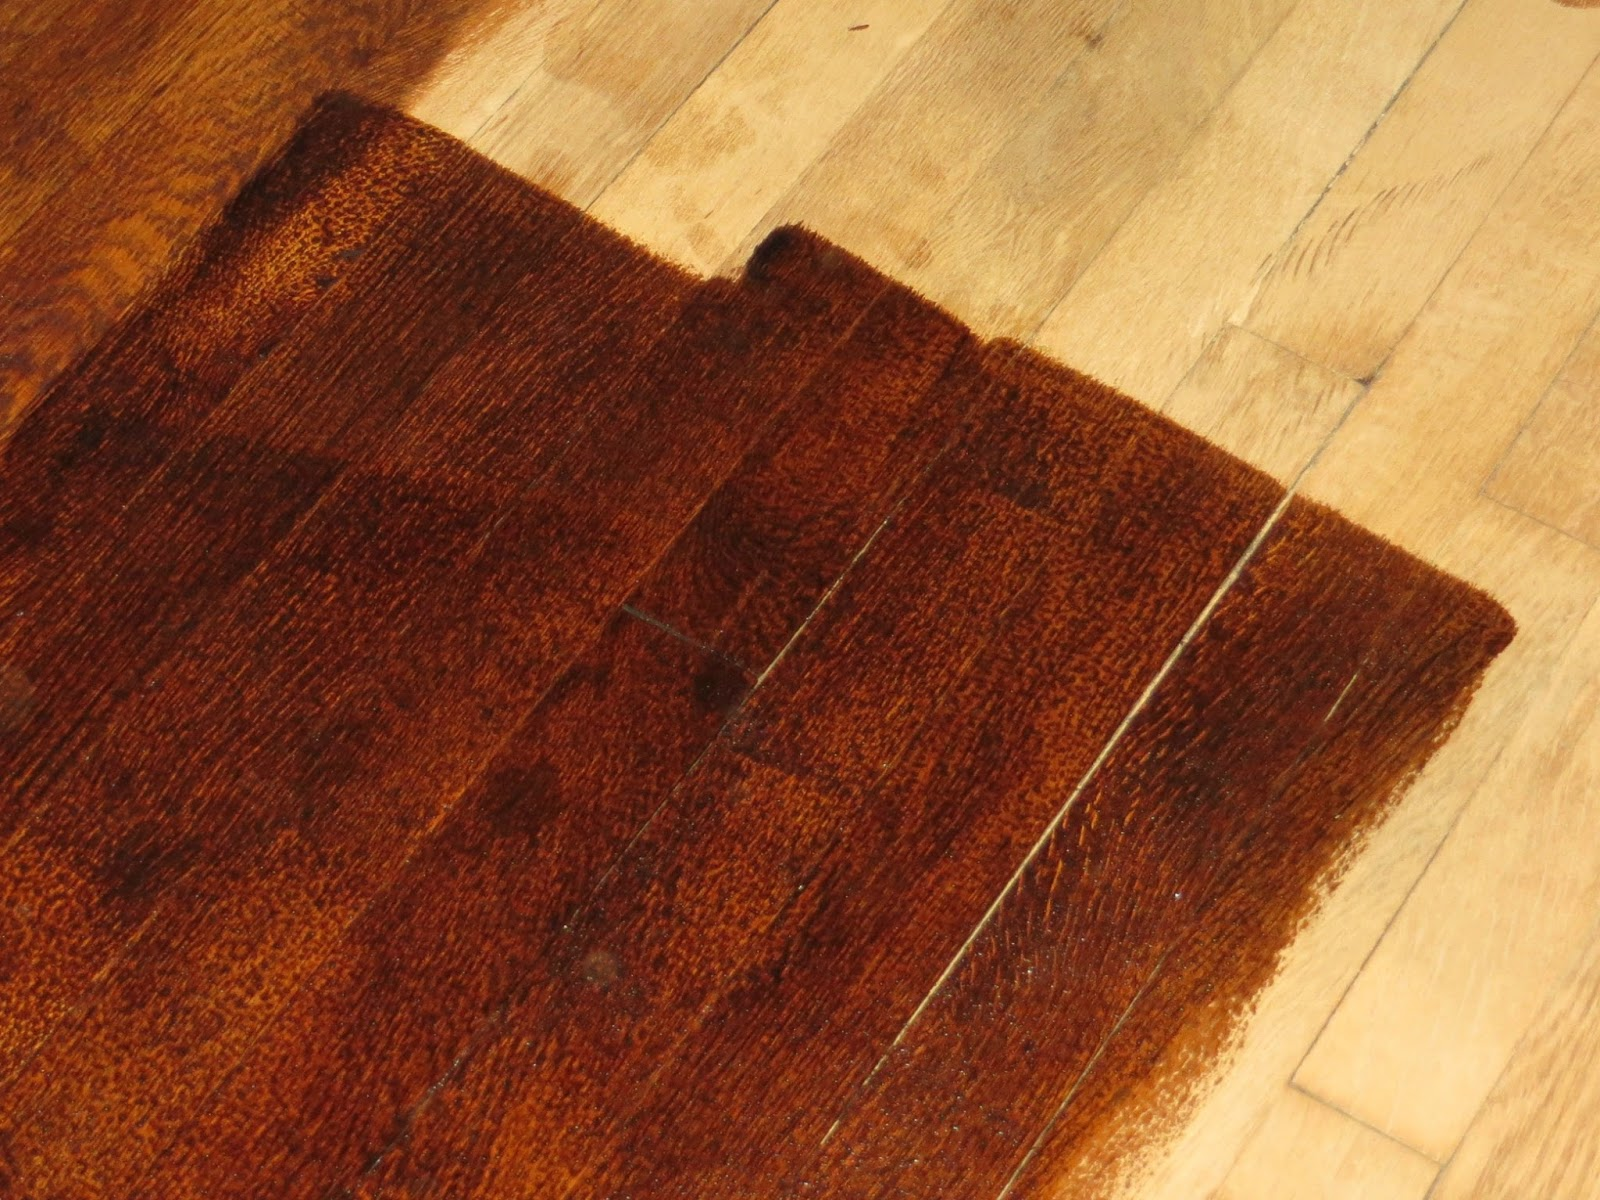 How To Stain Hardwood Floors Through The Eyes Of The Mrs